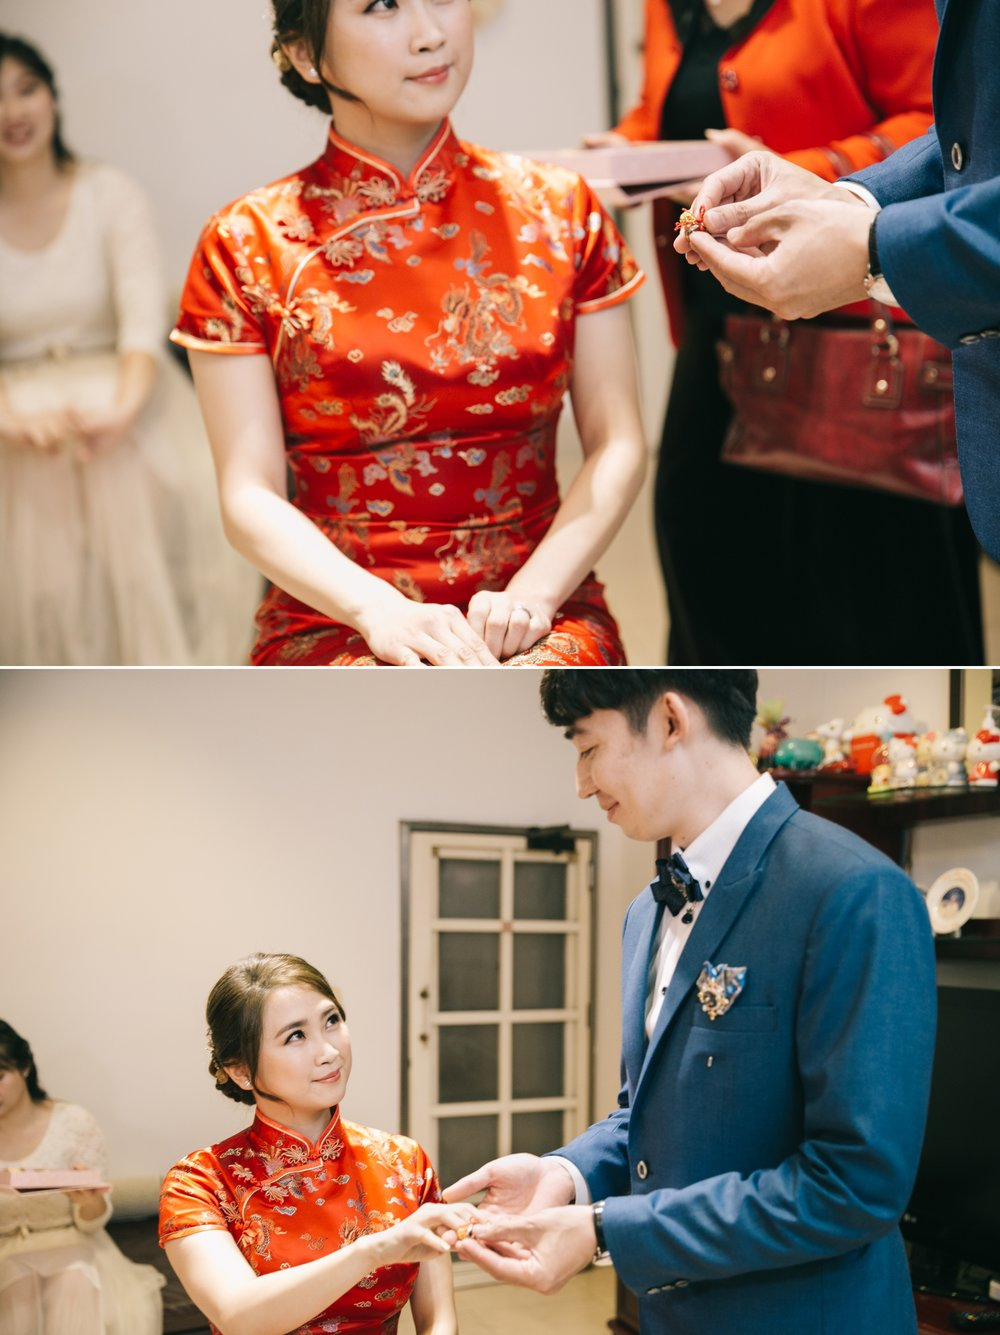 Keddy+Richard-wedding-新莊頤品飯店-035.jpg